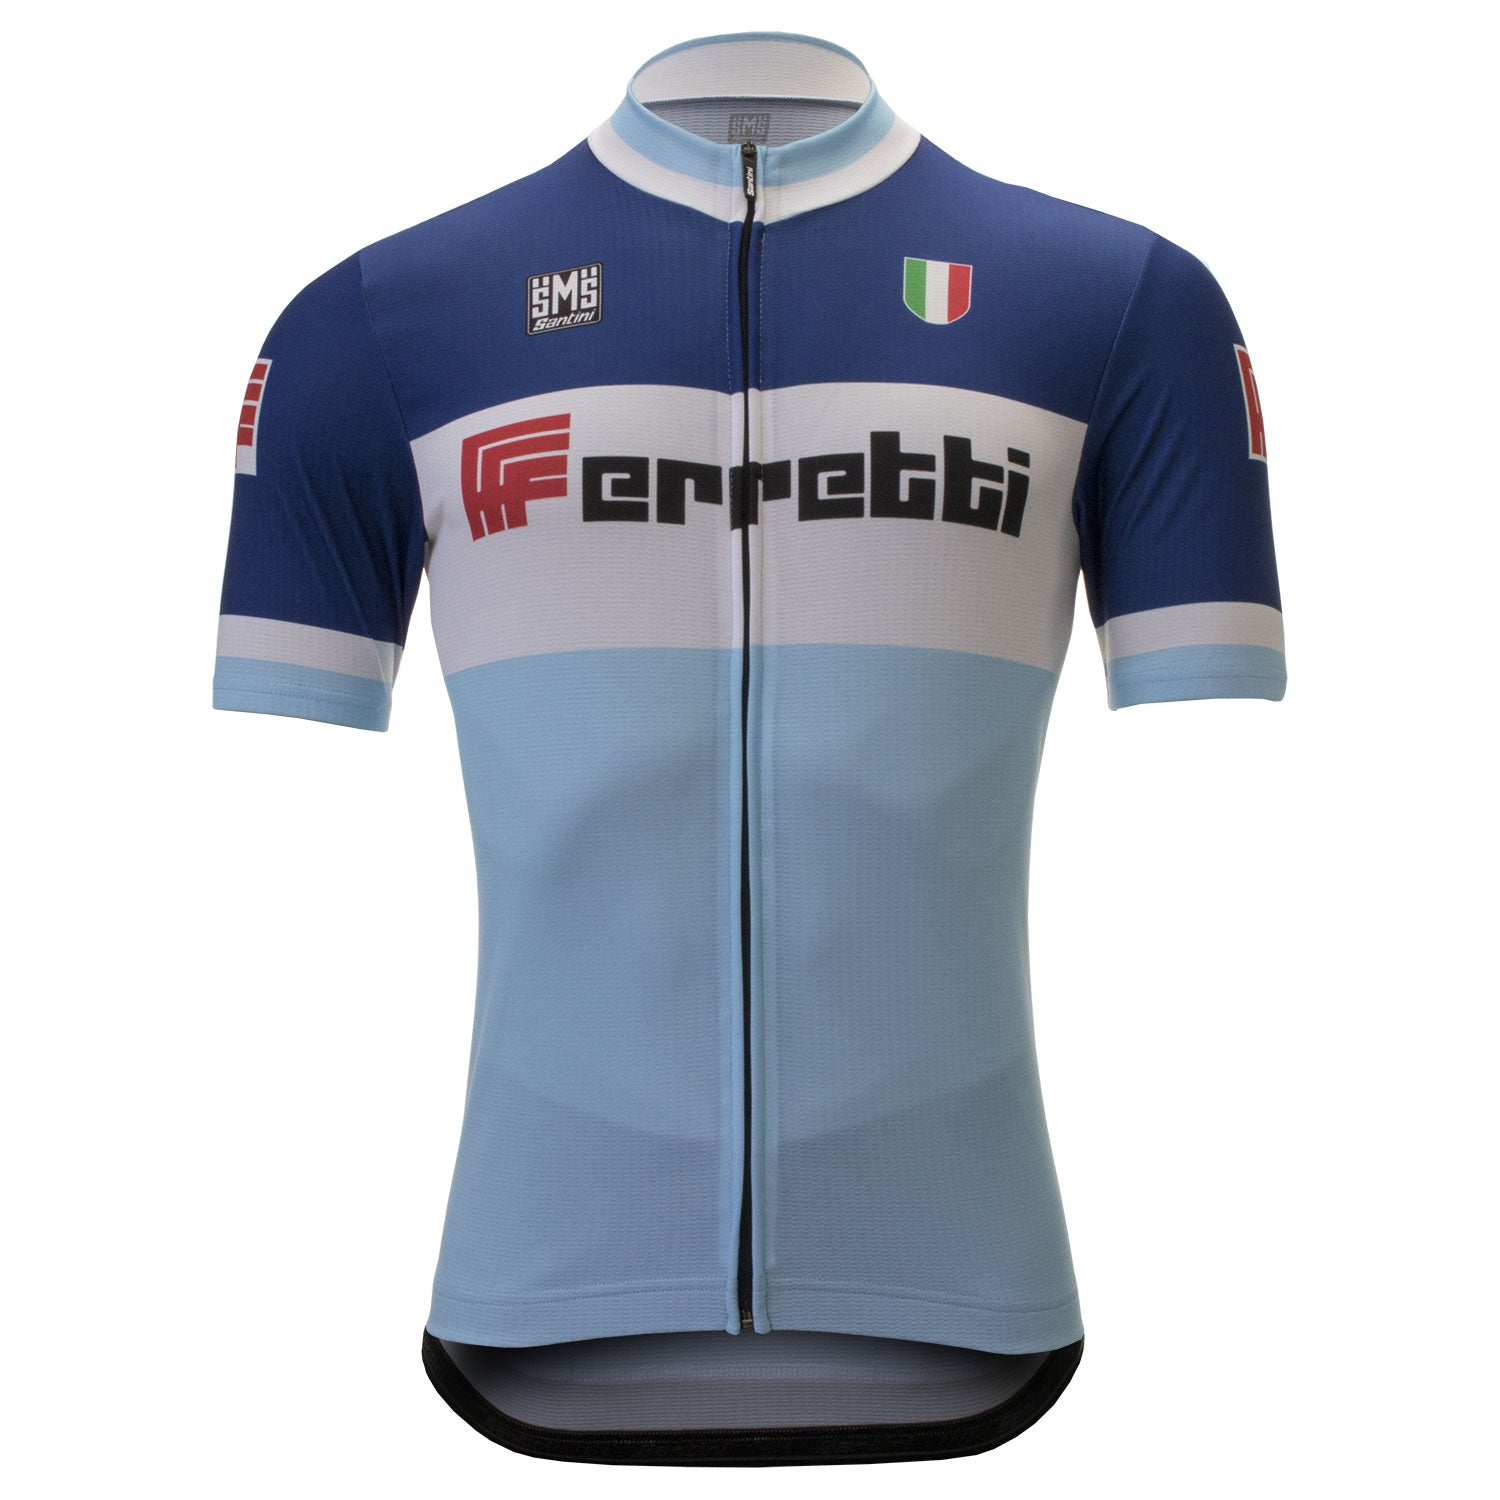 NEW 2017 ITALIA ITALY Team Cycling Jersey Retro Road Pro Clothing MTB Short Slee